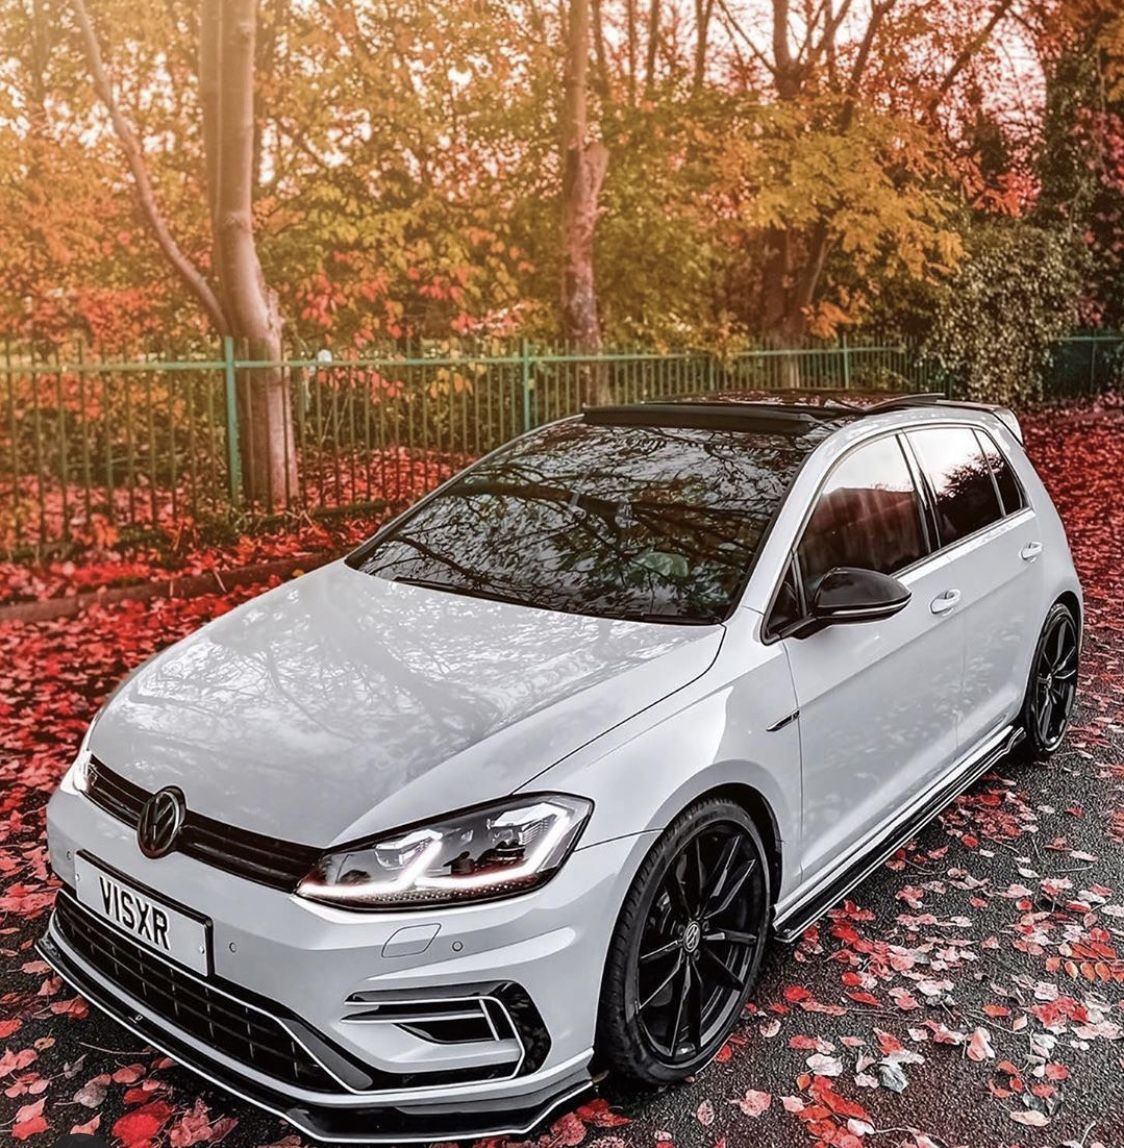 Pin By Paige Aver On Voitures Volkswagen Car Vw Golf R Mk7 Volkswagen Gti